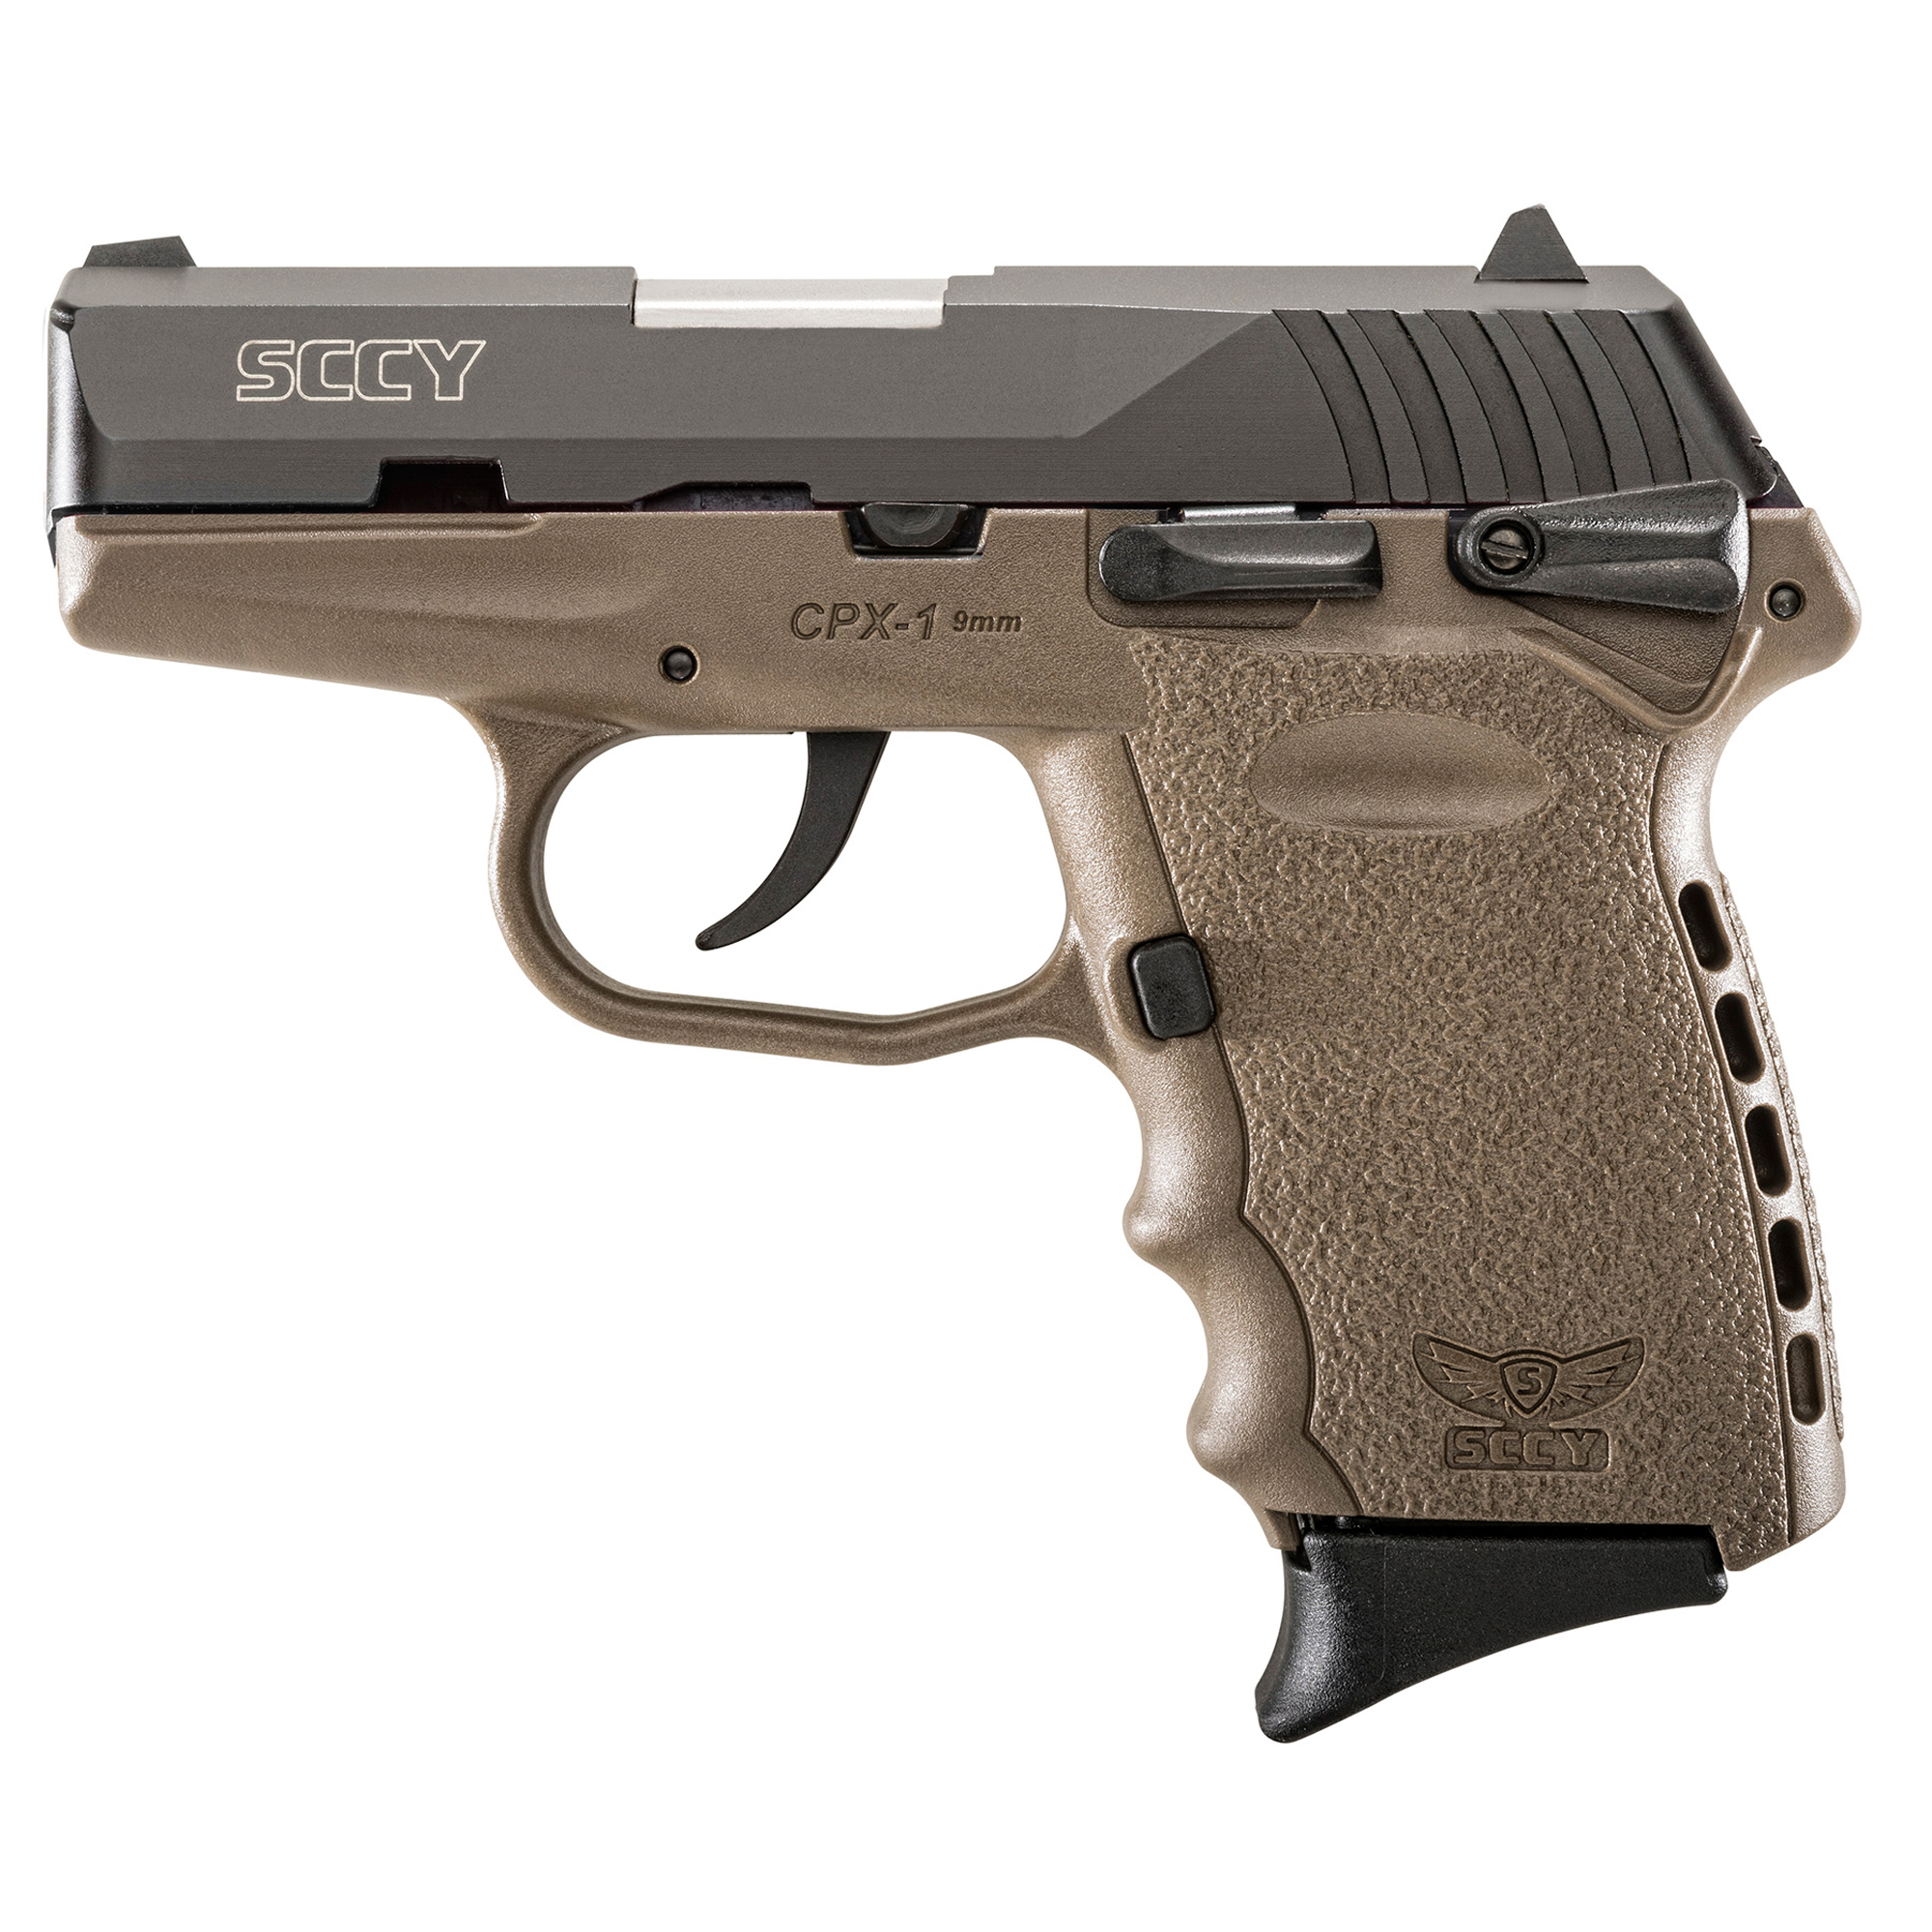 SCCY's CPX Series of 9mm pistols bring revolutionary design changes to the already proven quality of these made in the USA firearms. These pistols are custom designed with the comfort and accuracy of the shooter in mind. The CPX Series delivers the legendary durability and quality of SCCY Firearms at an extremely attractive price. It is the ideal handgun for concealed carry.